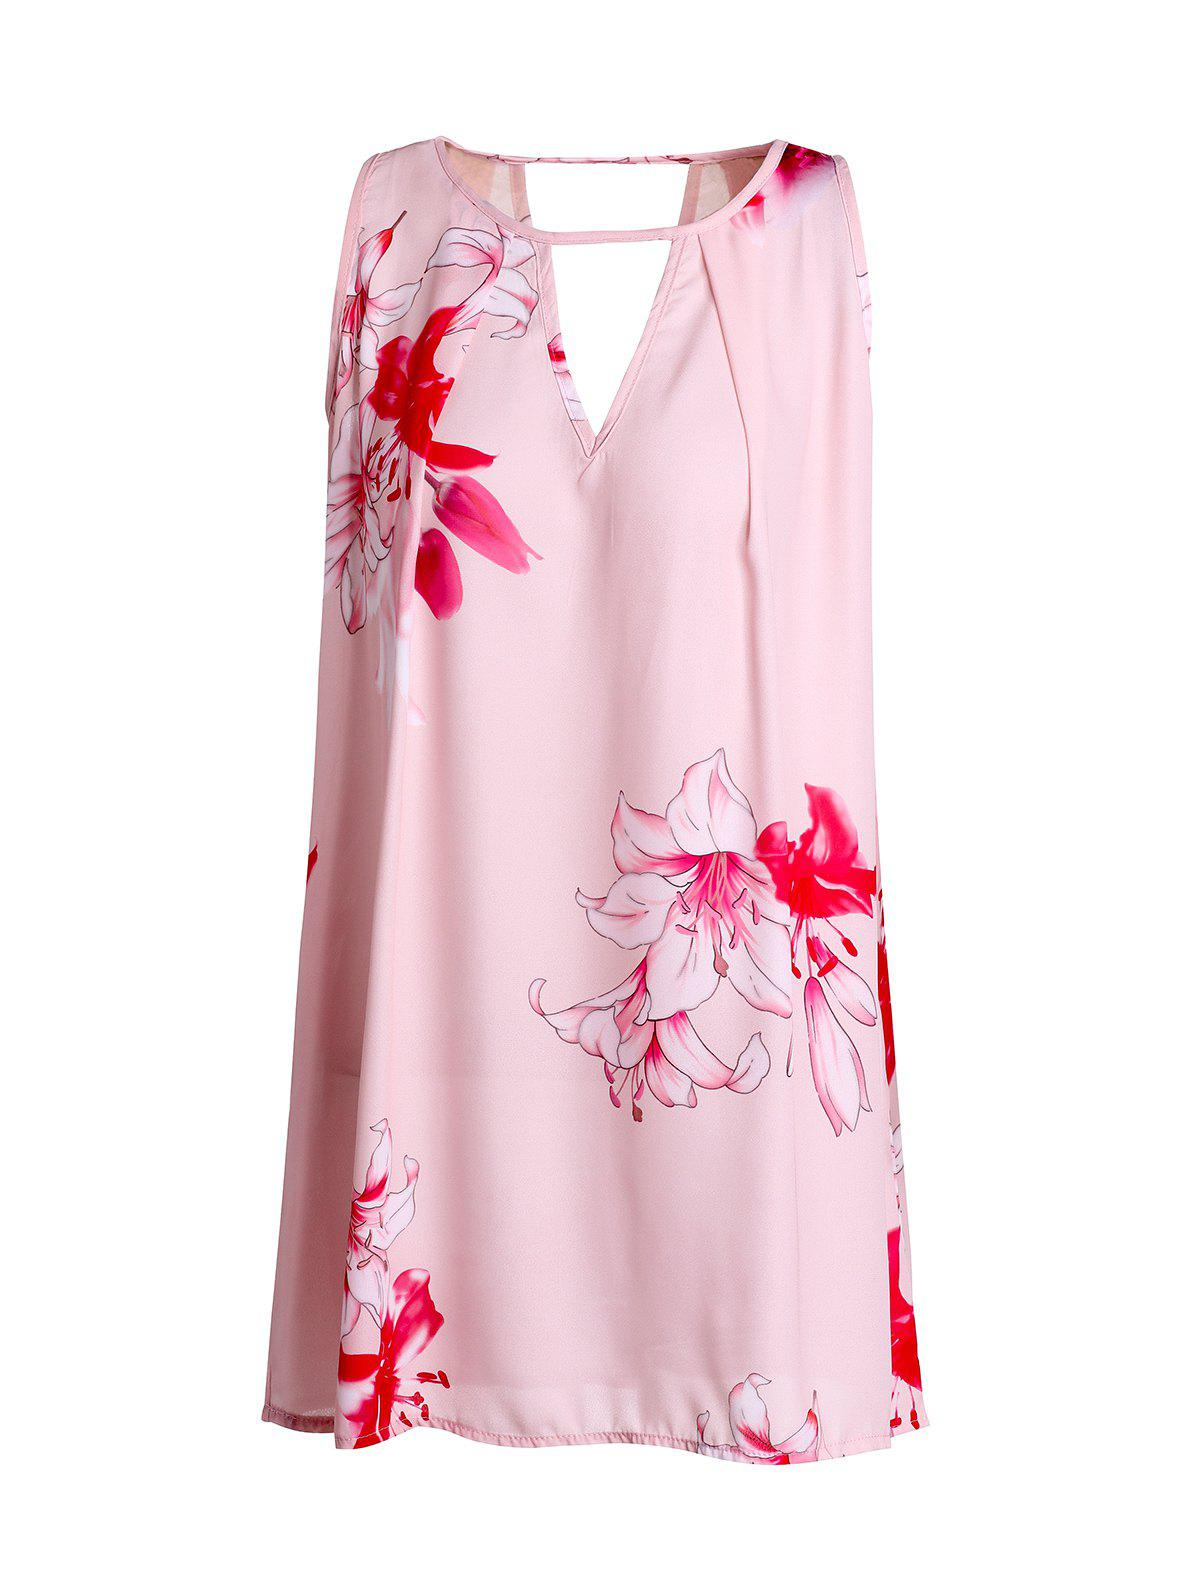 Sweet Sleeveless Floral Print Cut Out Dress For Women - SHALLOW PINK M